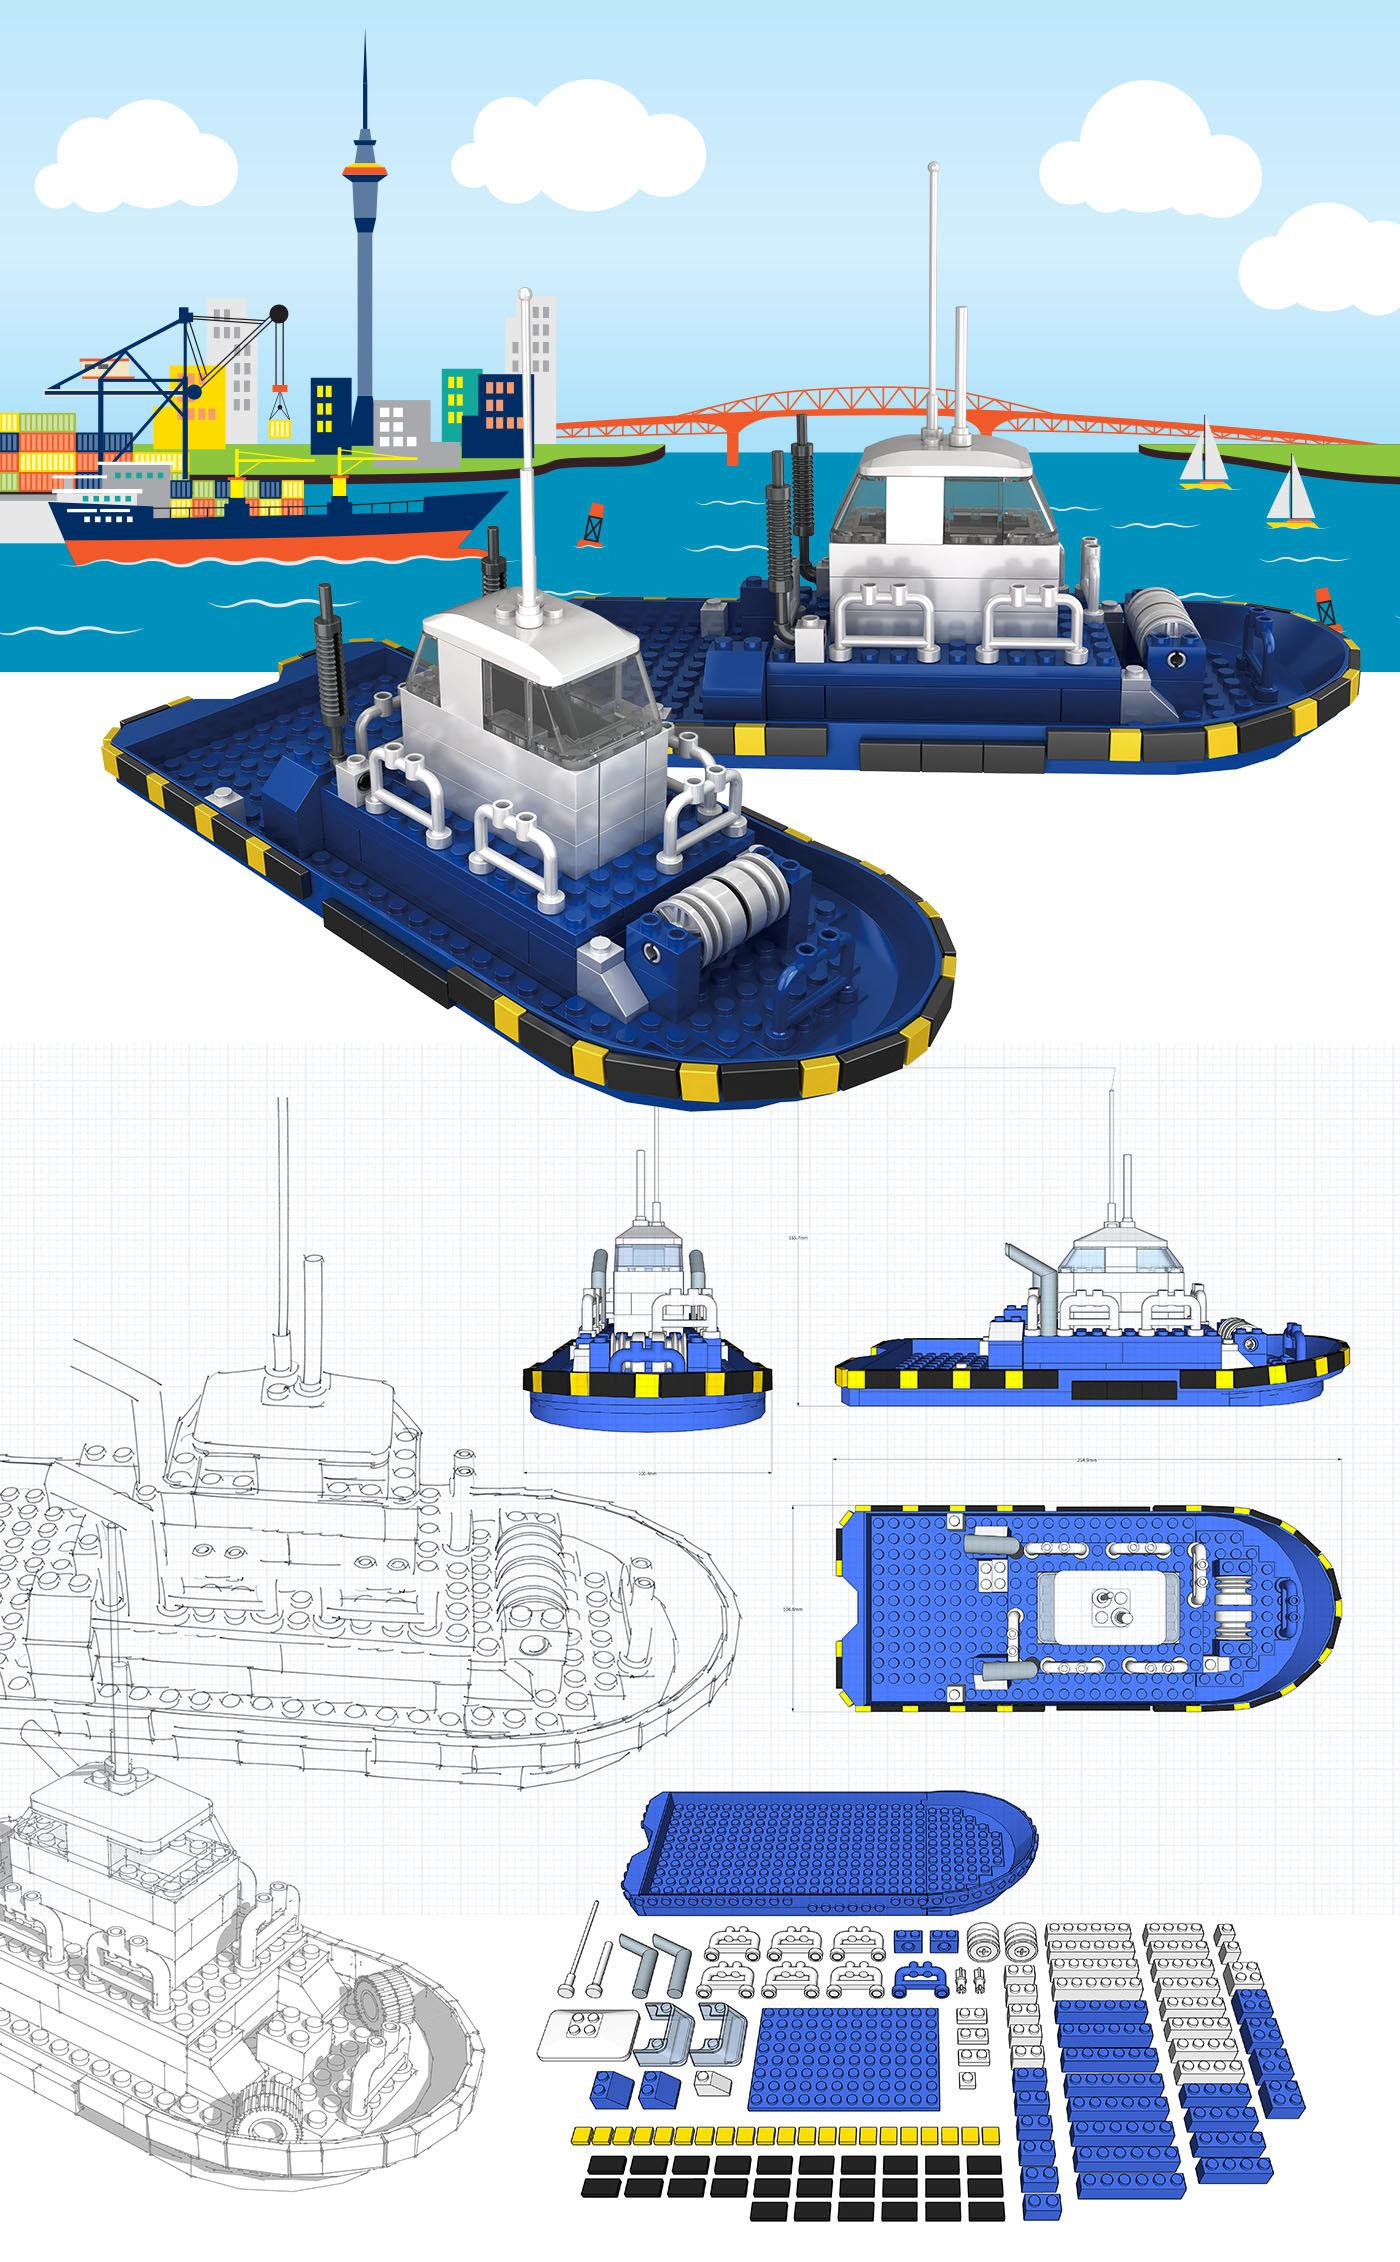 Toy brick tugboat   ports of auckland